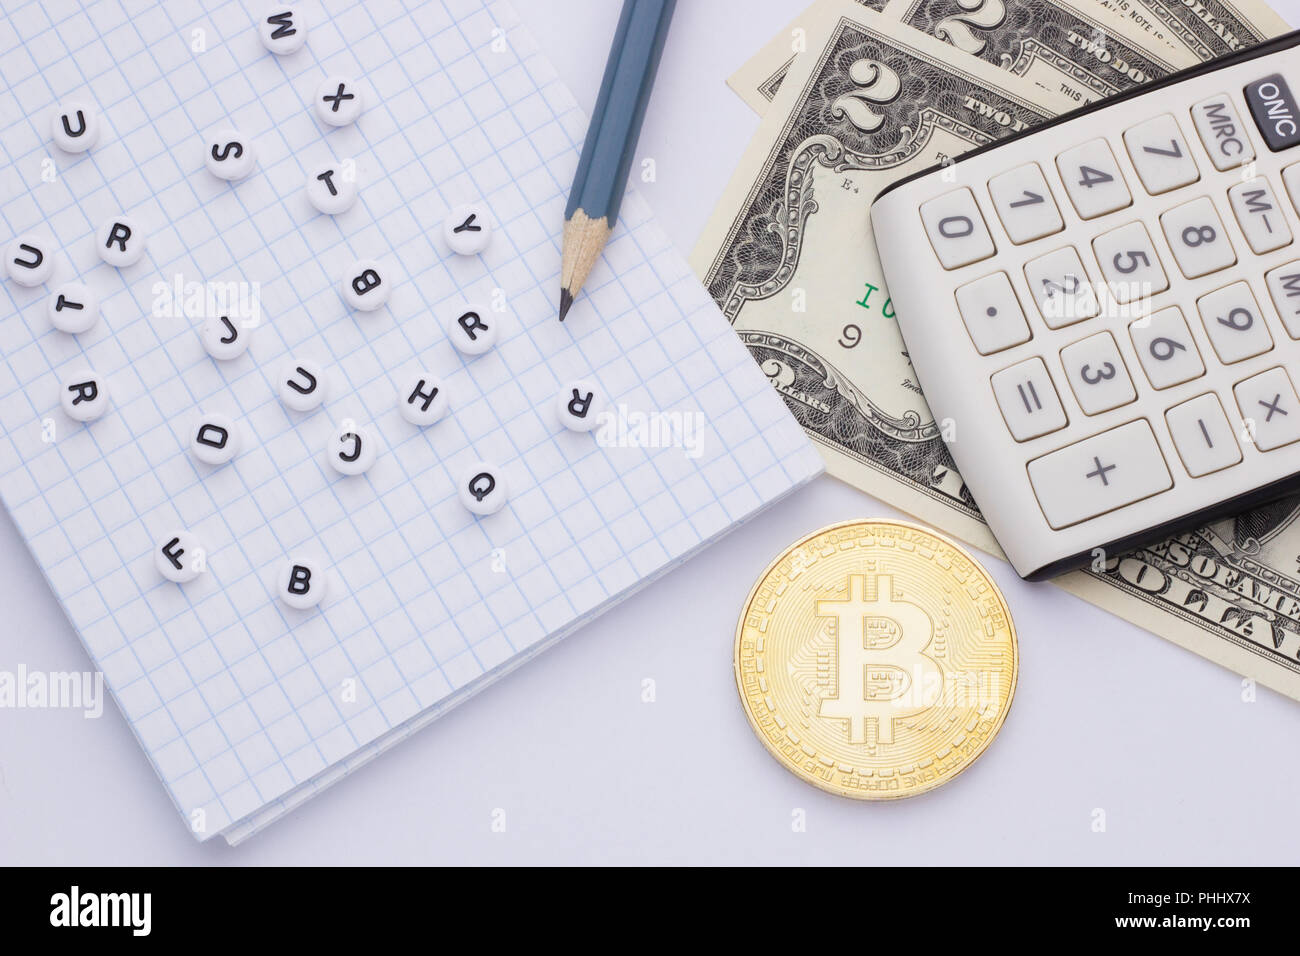 close-up, on a white background calculator, money (bitcoin) and